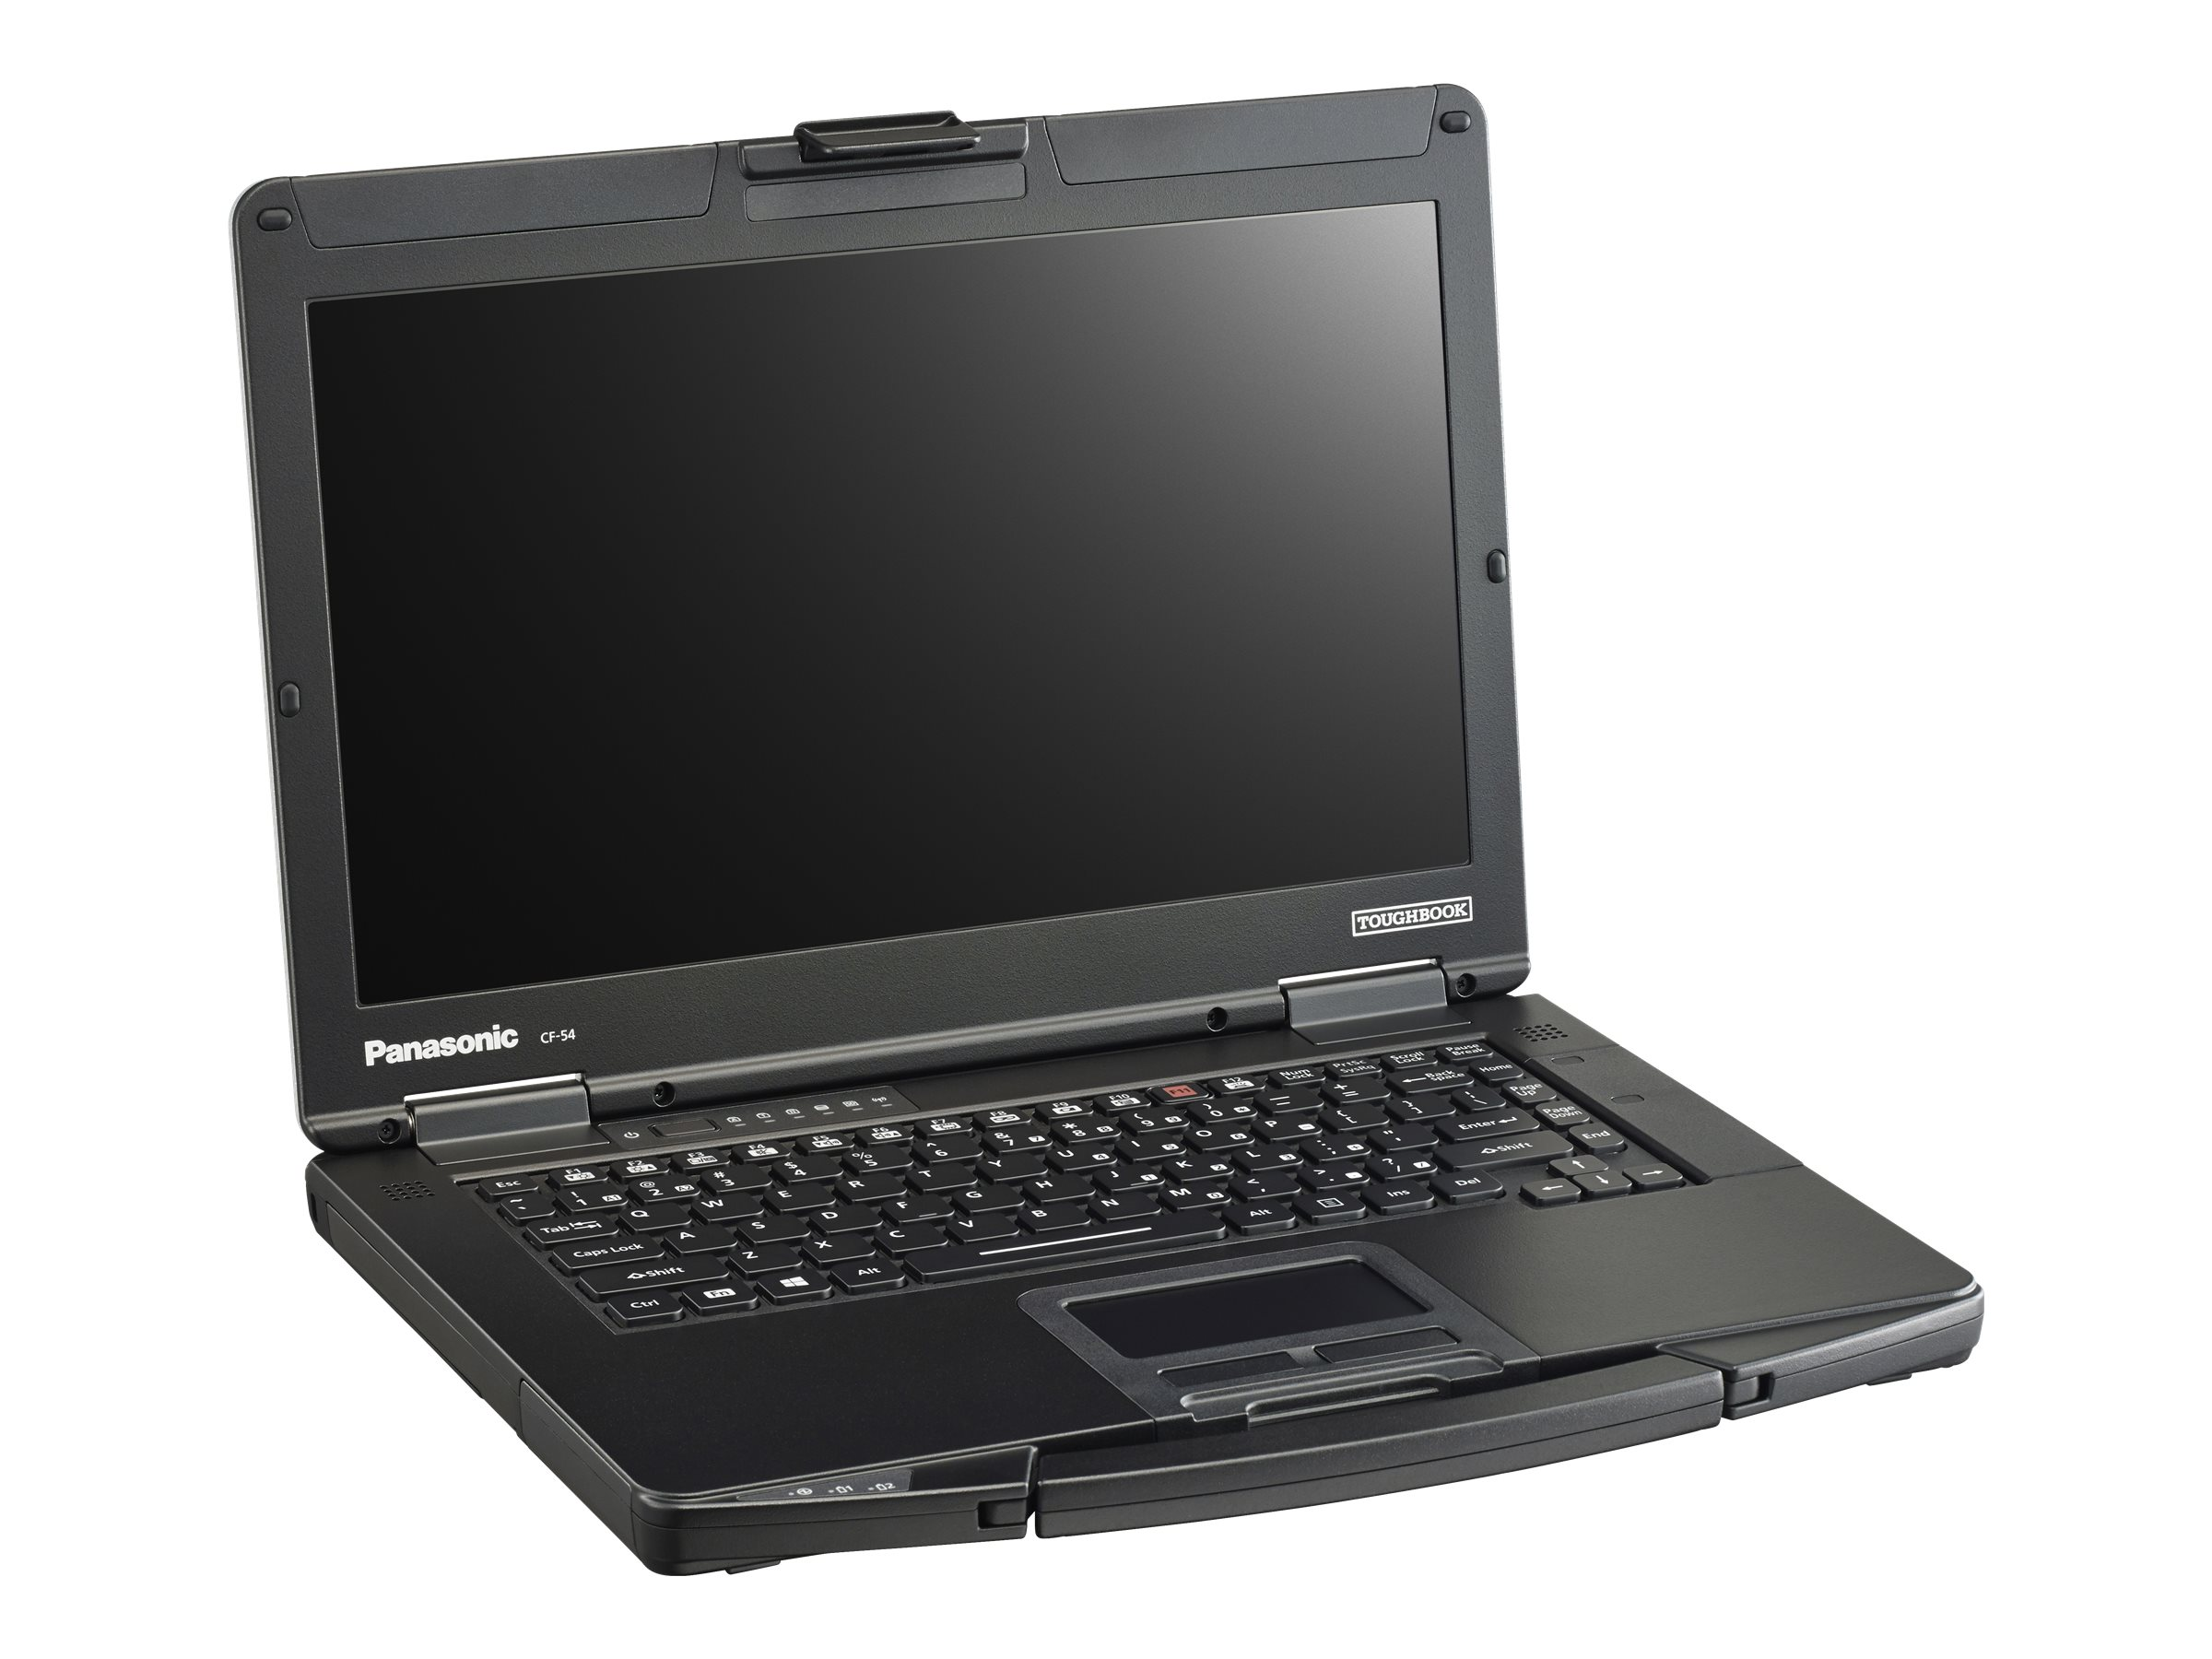 Panasonic Toughbook 54 2.4GHz Core i5 14in display, CF-54F9115KM